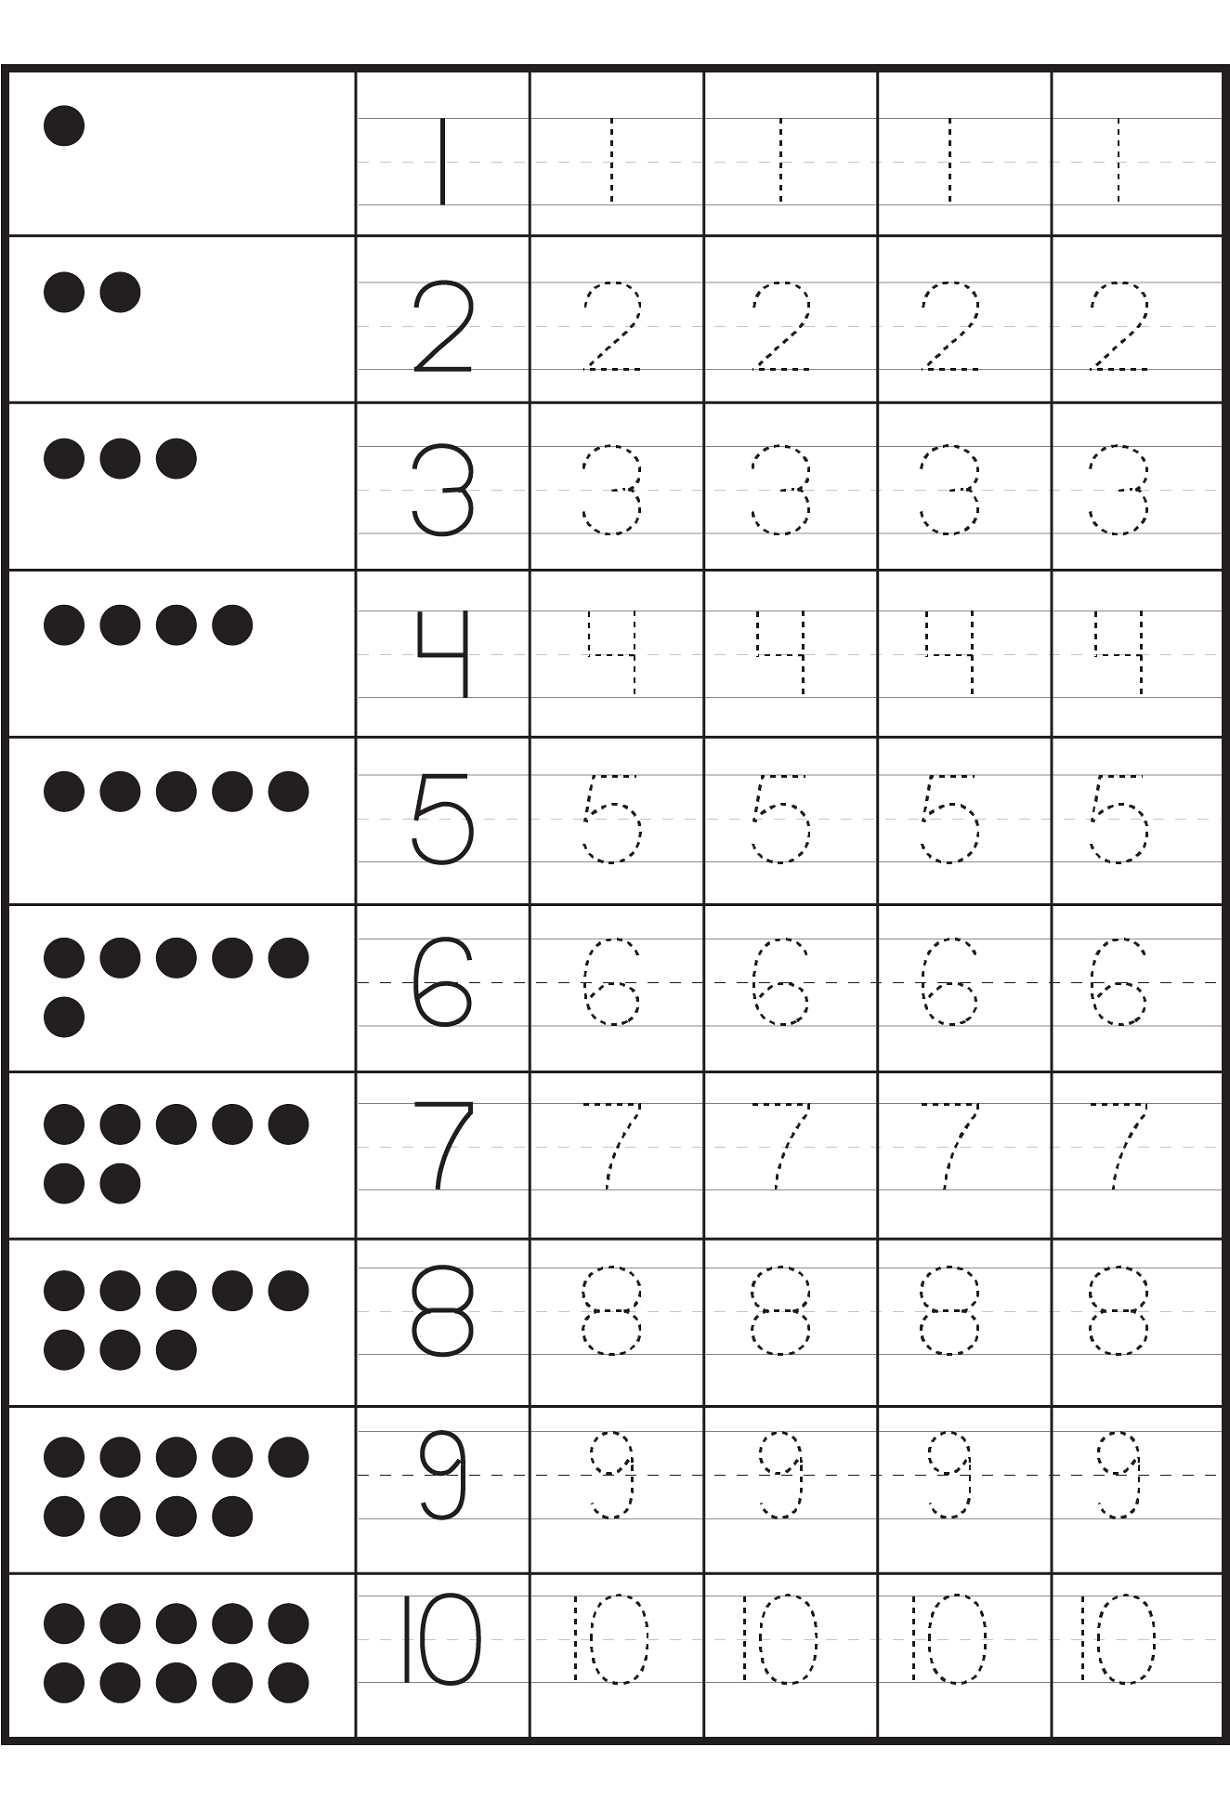 worksheet Tracing Numbers 1-10 tracing numbers 1 10 worksheets activity shelter kids shelter